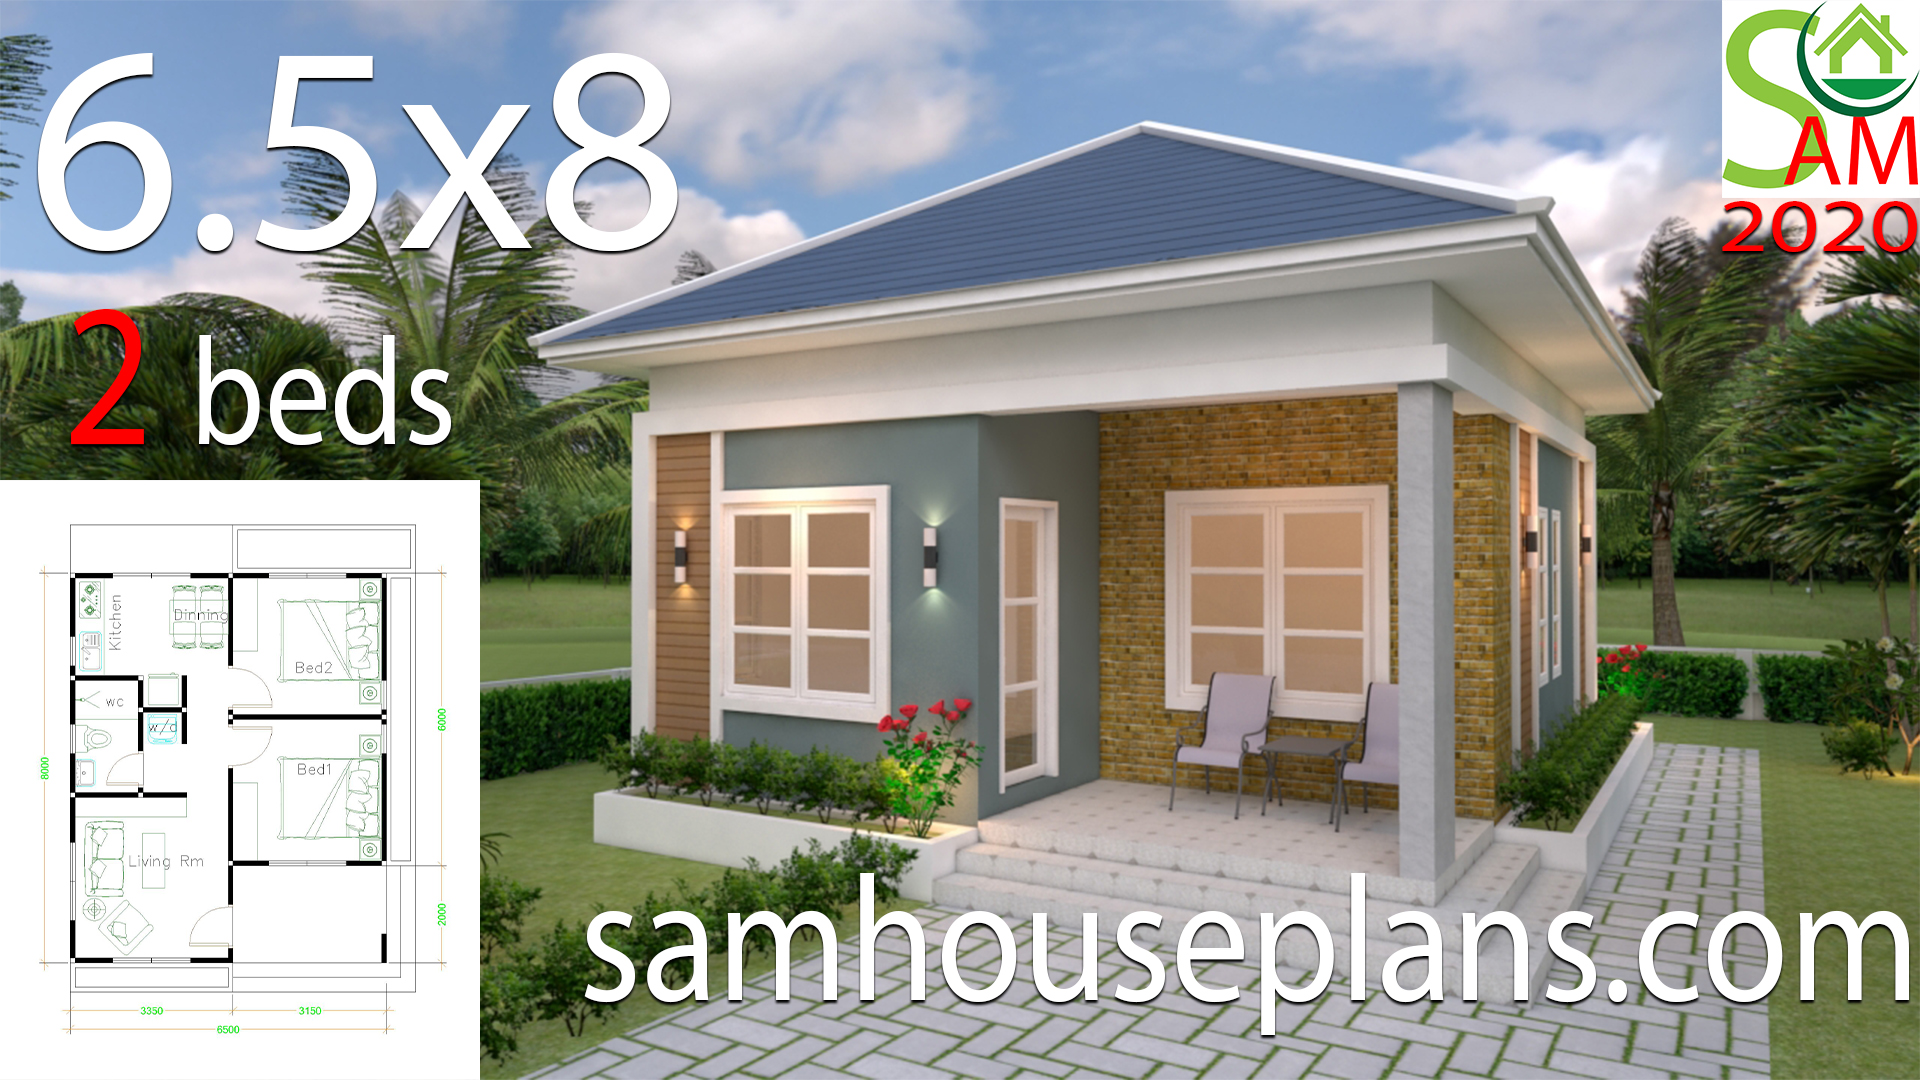 Small House Plans 6 5x8 With 2 Bedrooms Hip Roof Samhouseplans